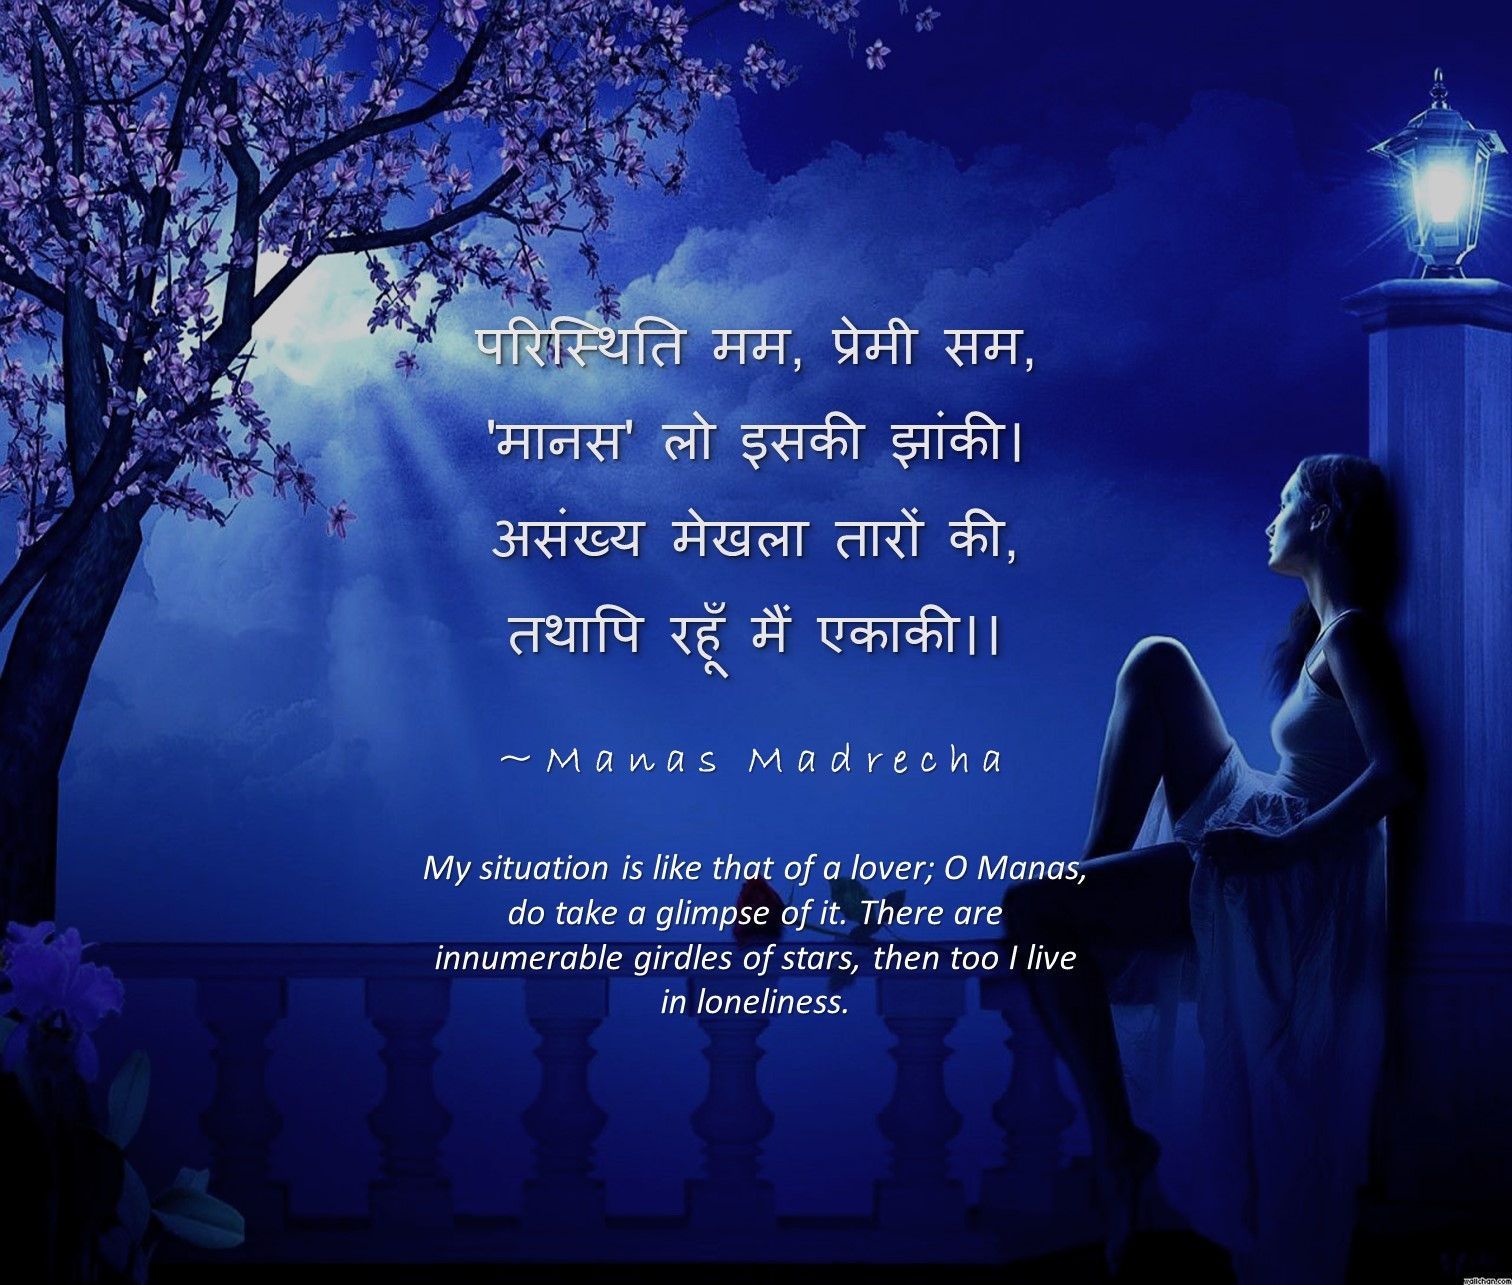 Hindi poem on moon, poem on moon, moon quotes, moon love, girl seeing moon, alone moon, alone girl moon, moon blue sky, moon in the sky, moon love wallpaper, love quotes on moon, Manas Madrecha, Manas Madrecha poems, Manas Madrecha quotes, Manas Madrecha stories, Manas Madrecha blog, simplifying universe, beautiful girl seeing moon, sad girl seeing moon, girl in night with moon, moon shining